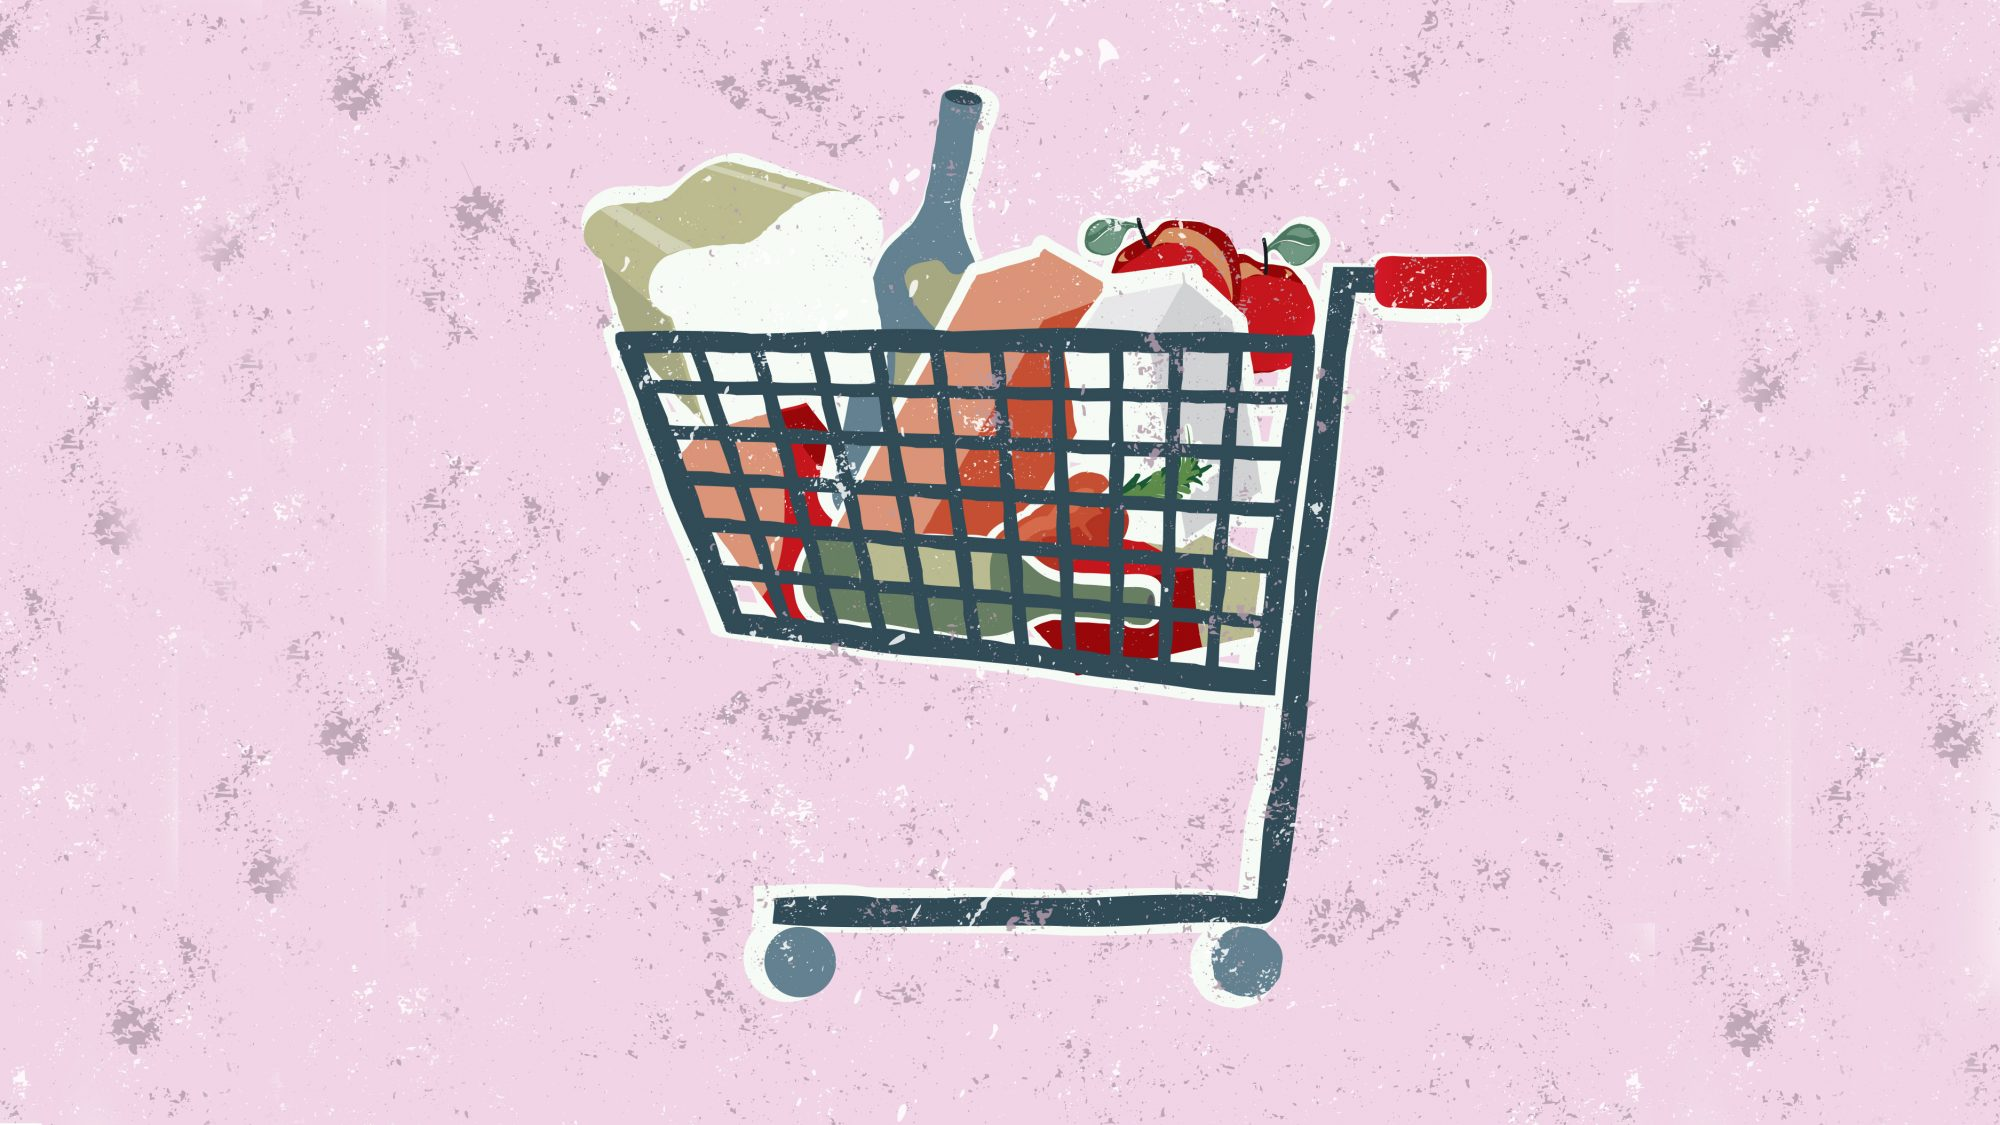 illustration of grocery cart with groceries